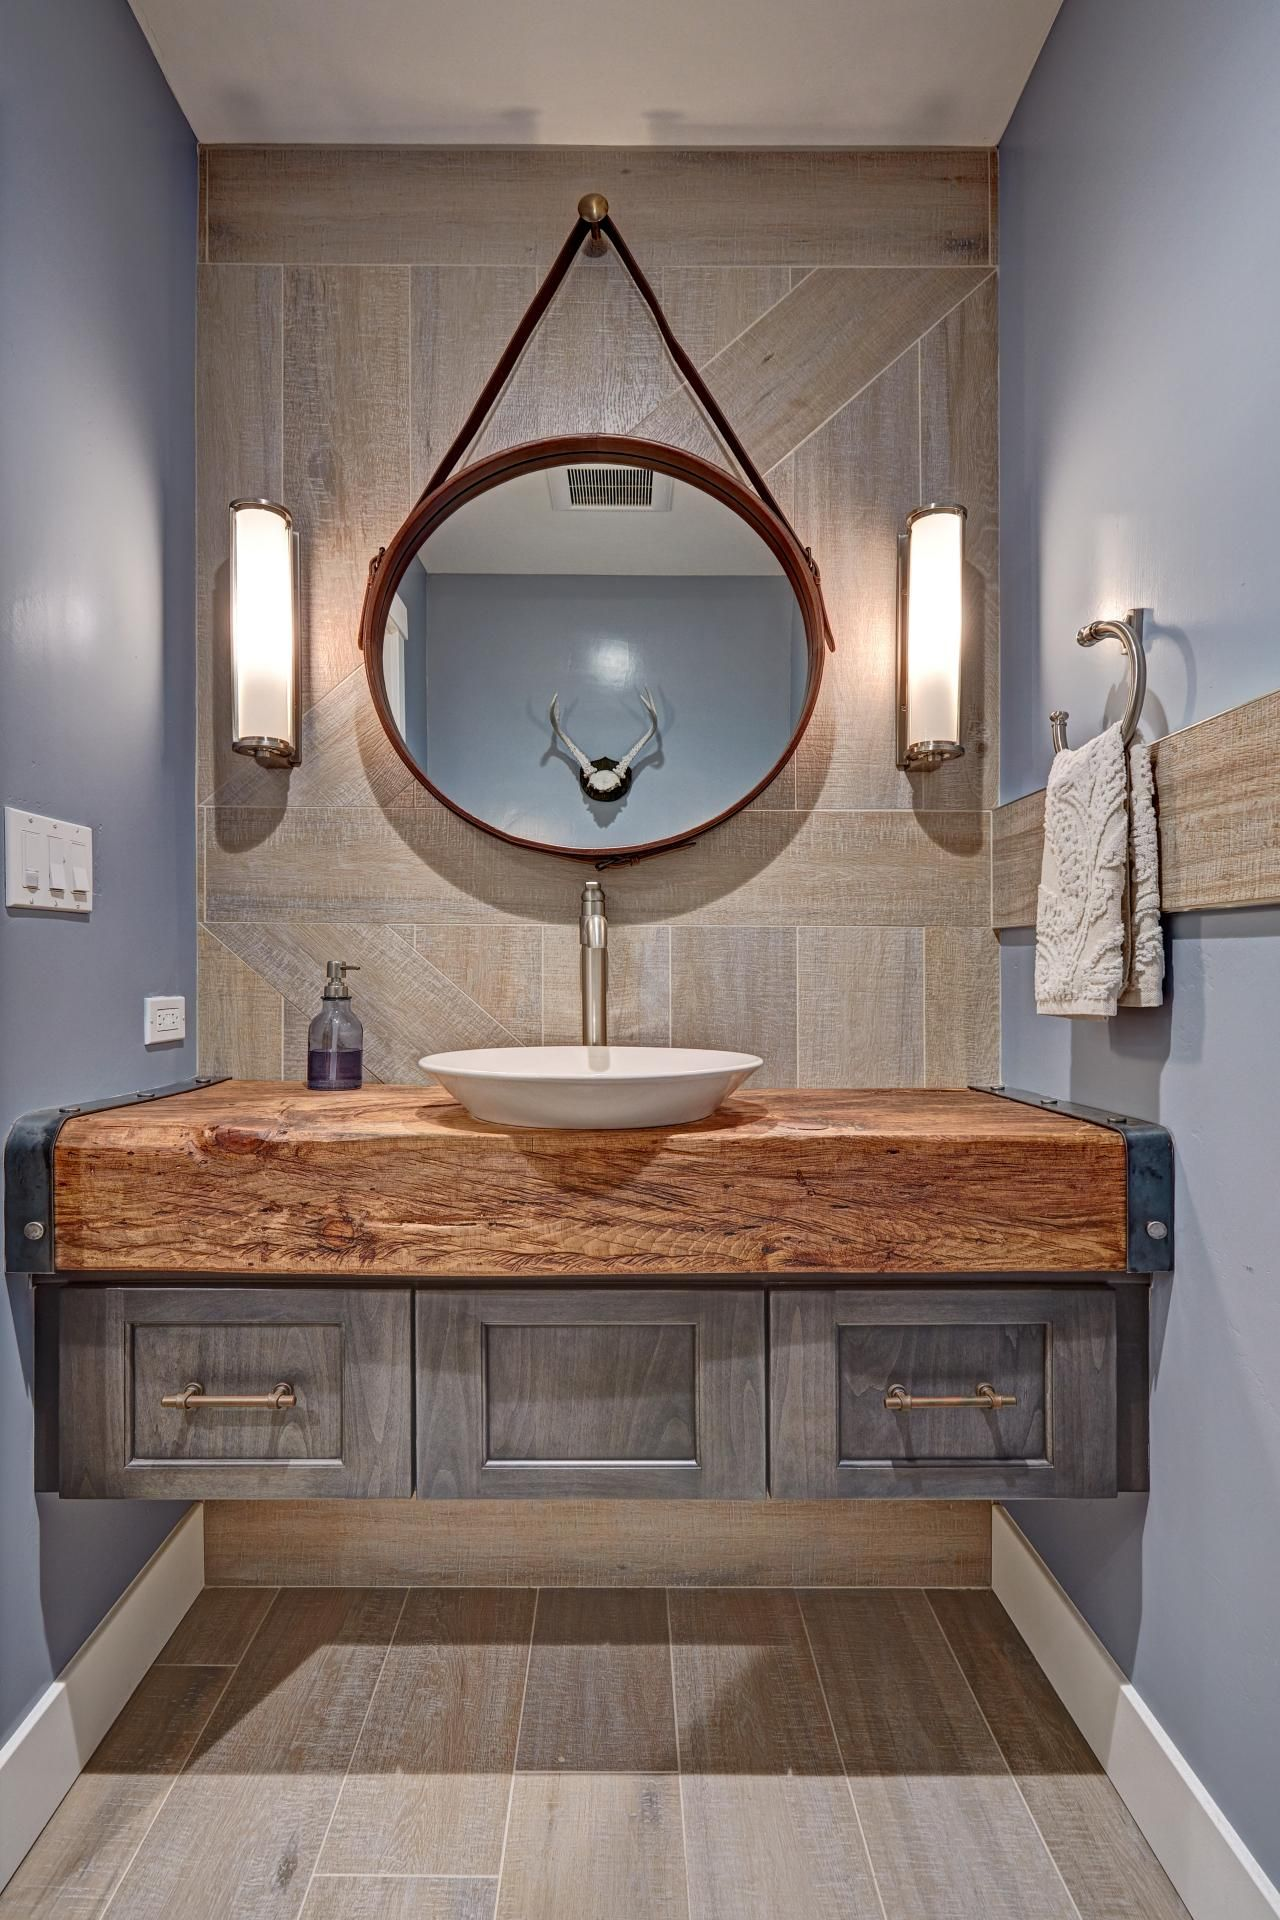 This Bathroom Features Both Earthy And Industrial Elements And Features A Vessel Sink Atop A Stunn Rustic Modern Bathroom Eclectic Bathroom Rustic Powder Room